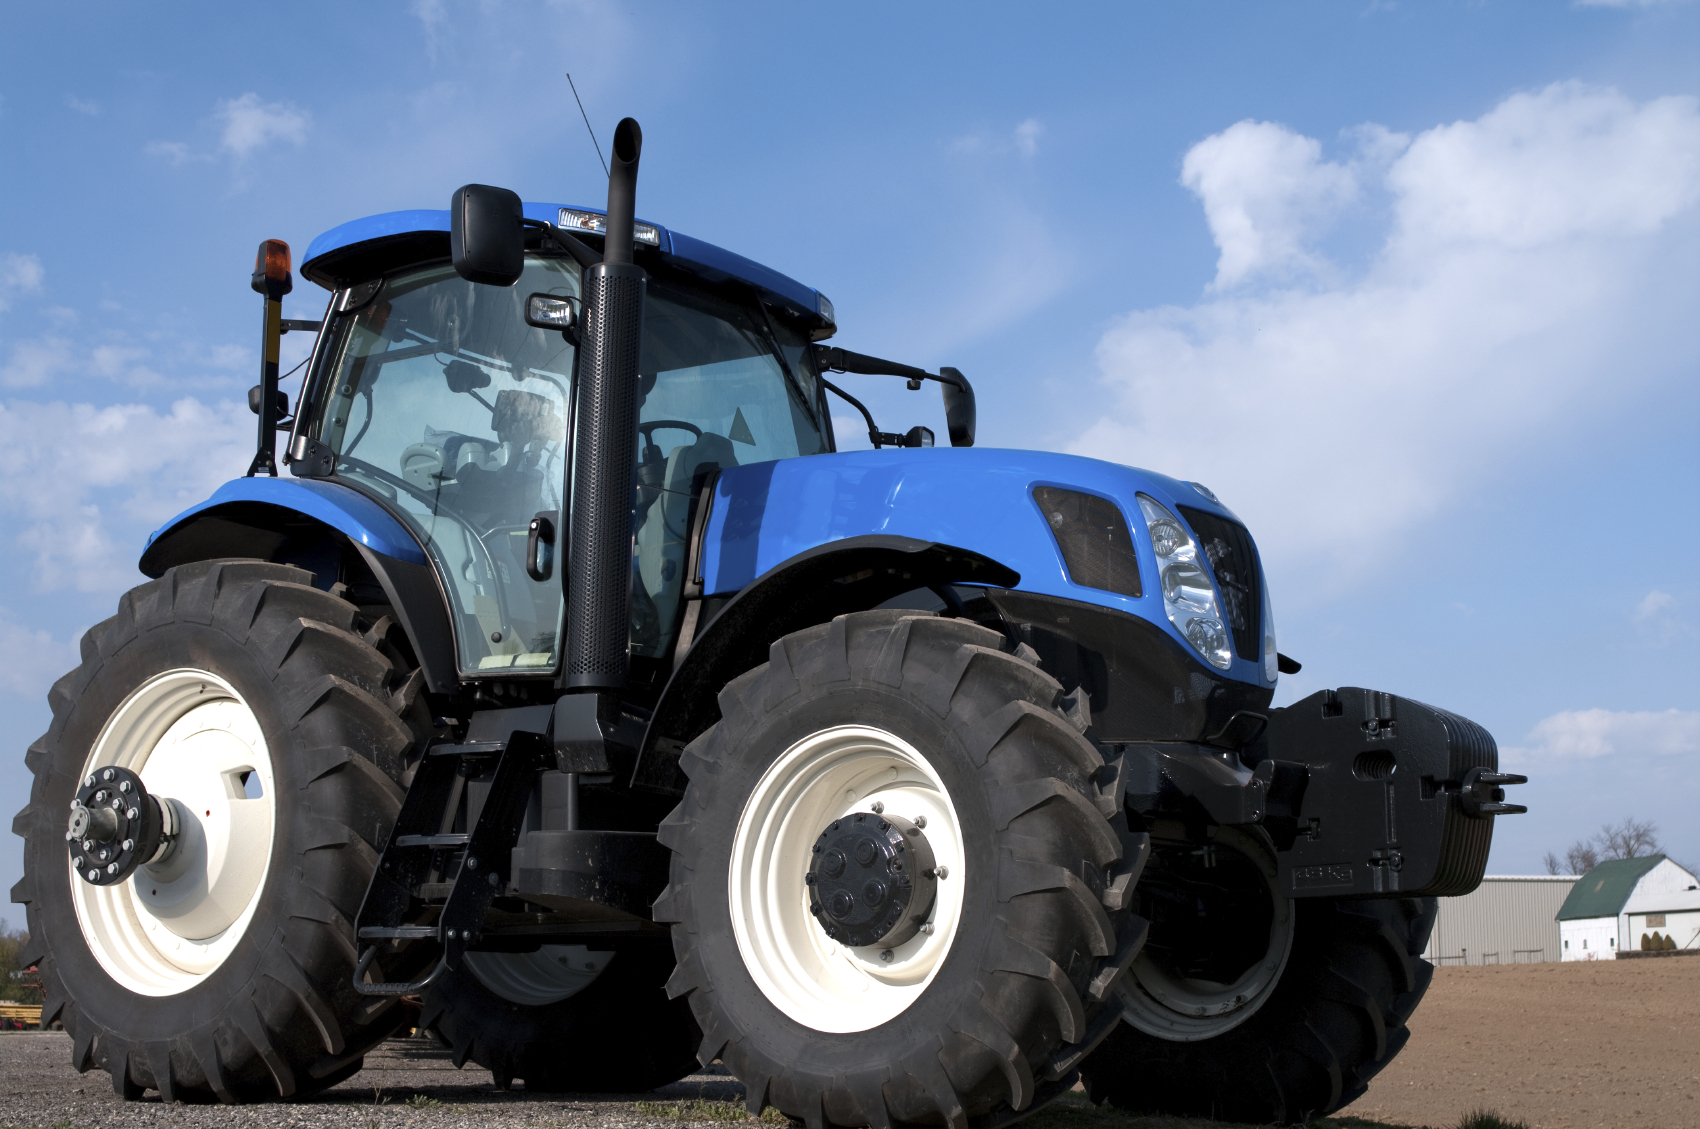 Compact tractor deck fastener redesign solves joint failure